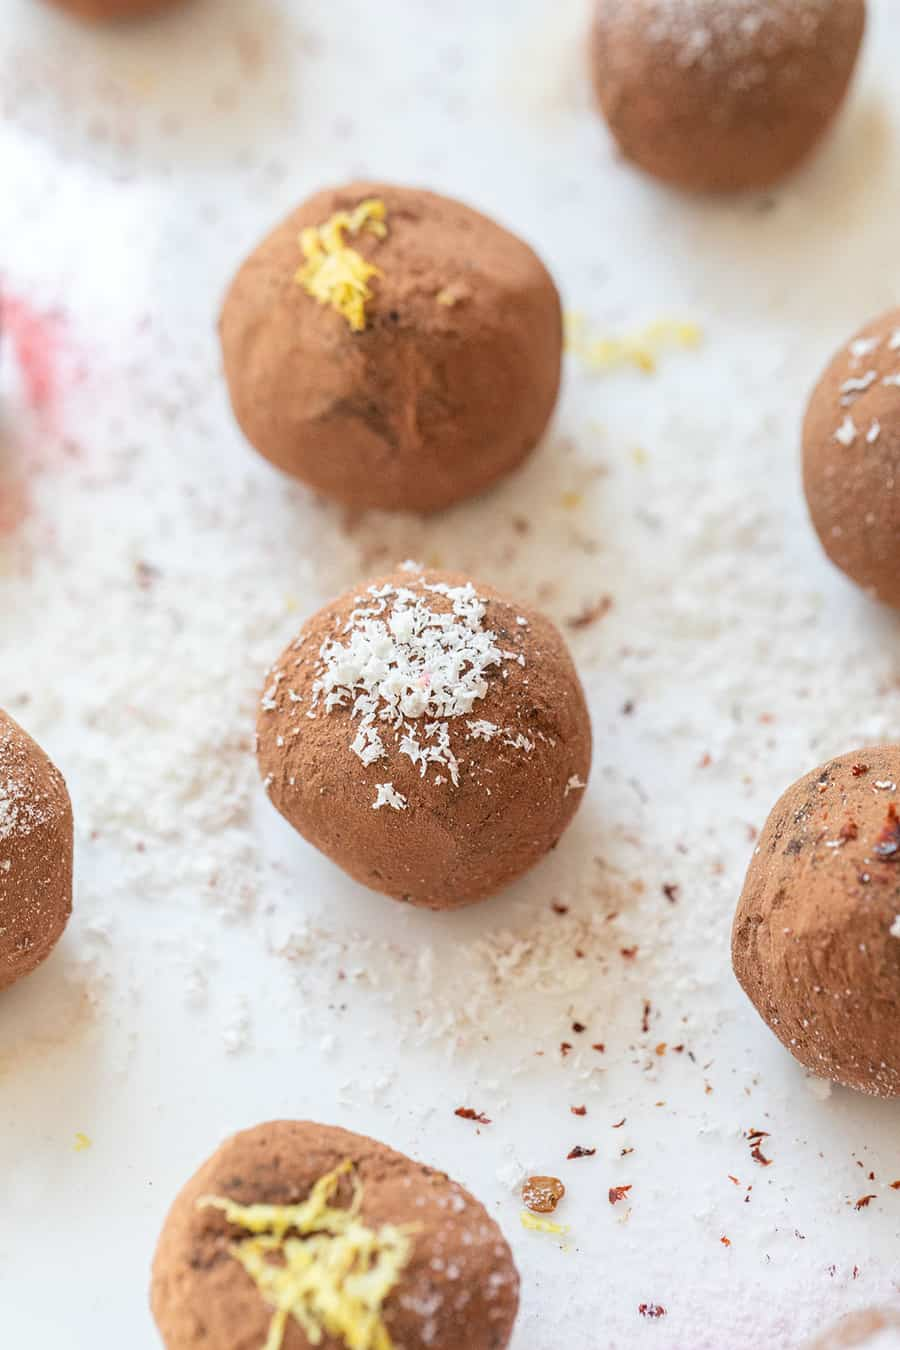 Chocolate truffles with white chocolate and lemon over the top